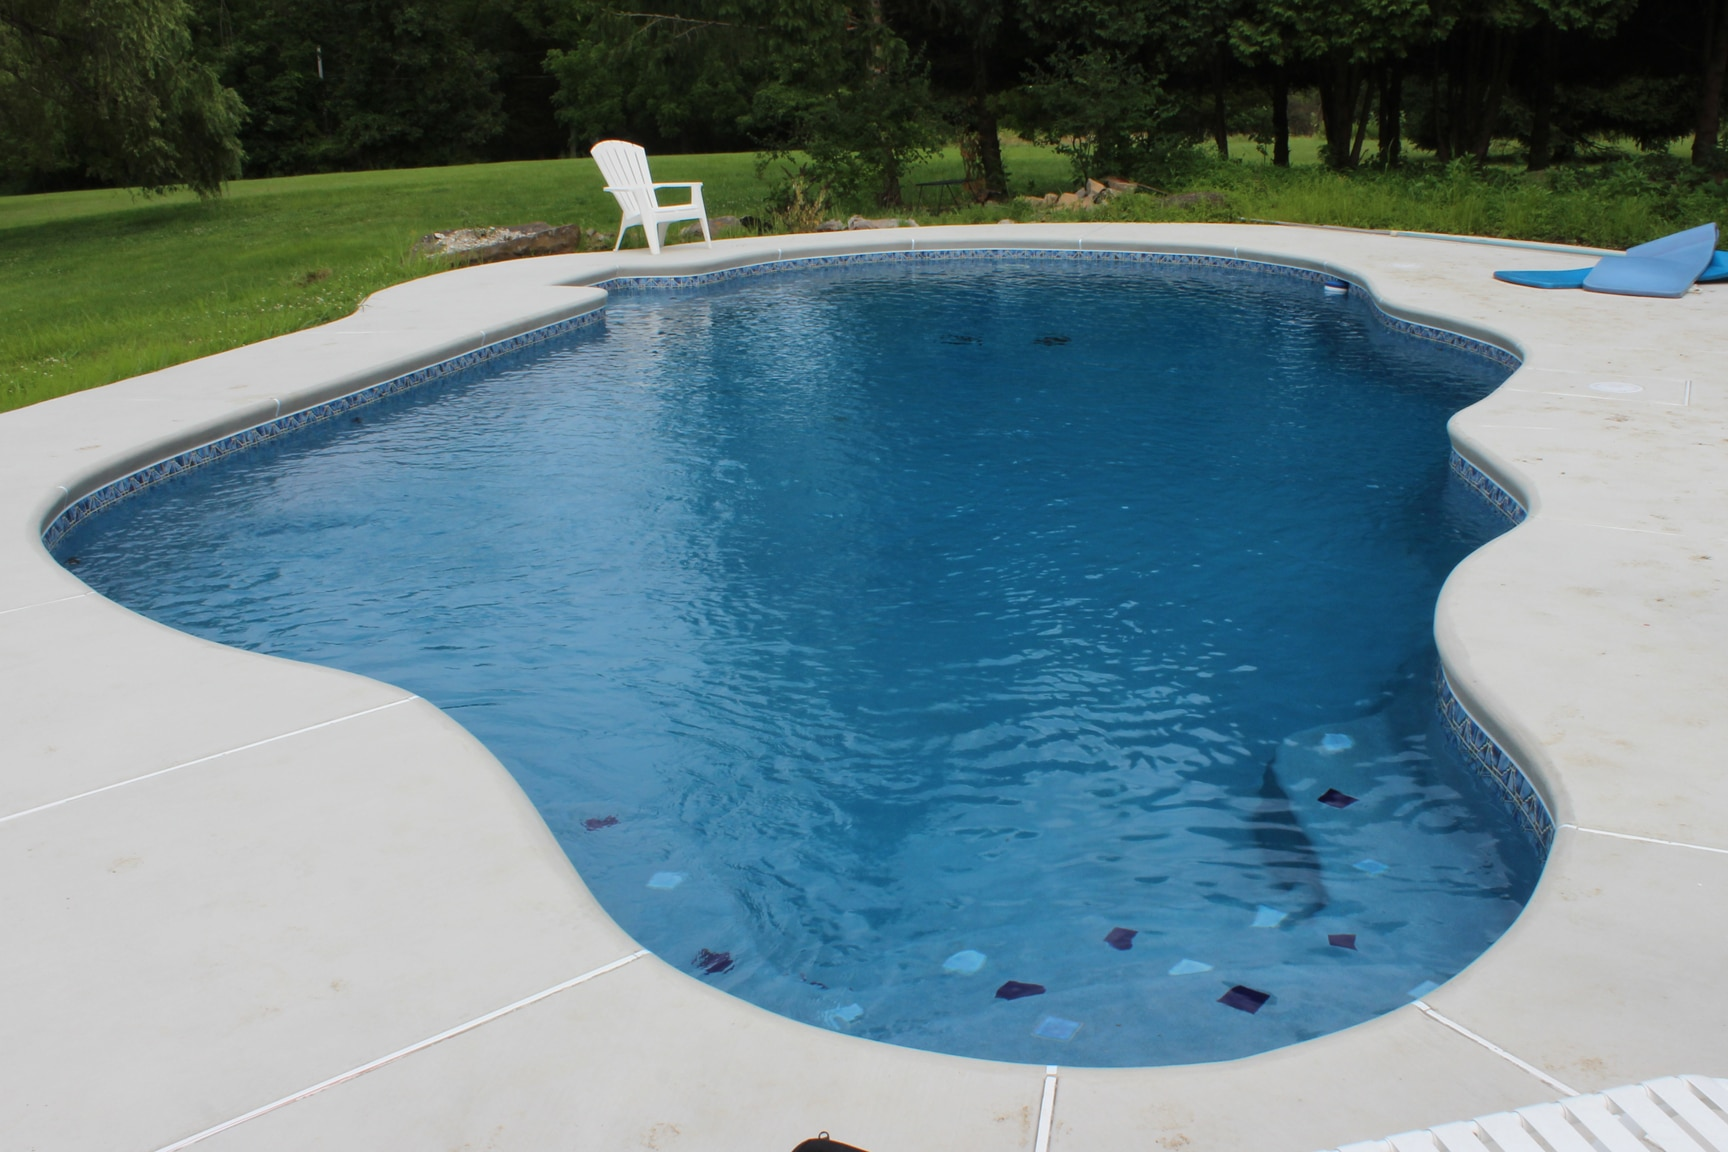 Krystalkrete pool plaster finish coronado 39 s pool for Pool plaster